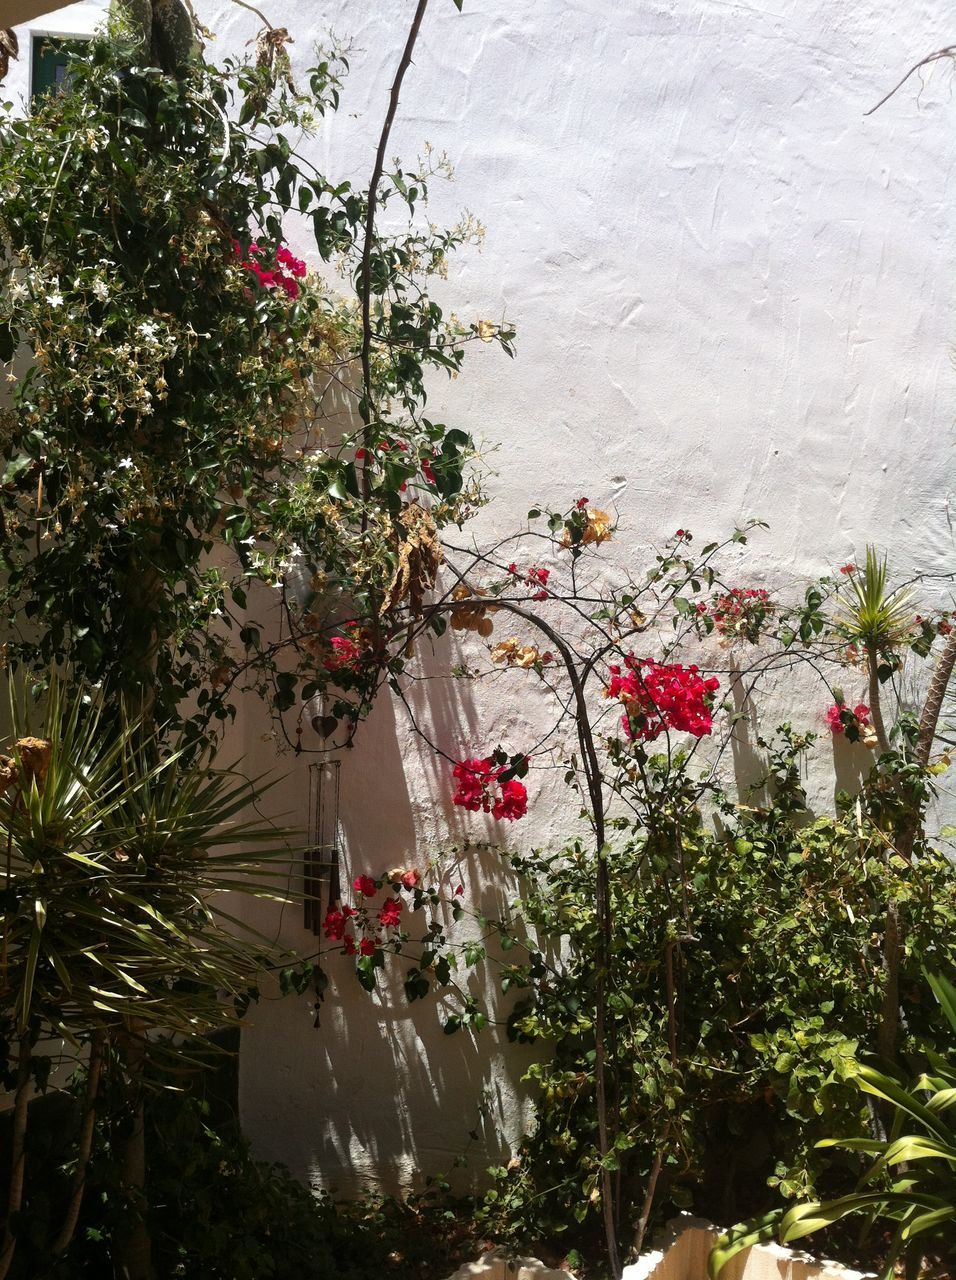 flower, growth, plant, tree, nature, fragility, no people, beauty in nature, day, outdoors, freshness, water, flower head, greenhouse